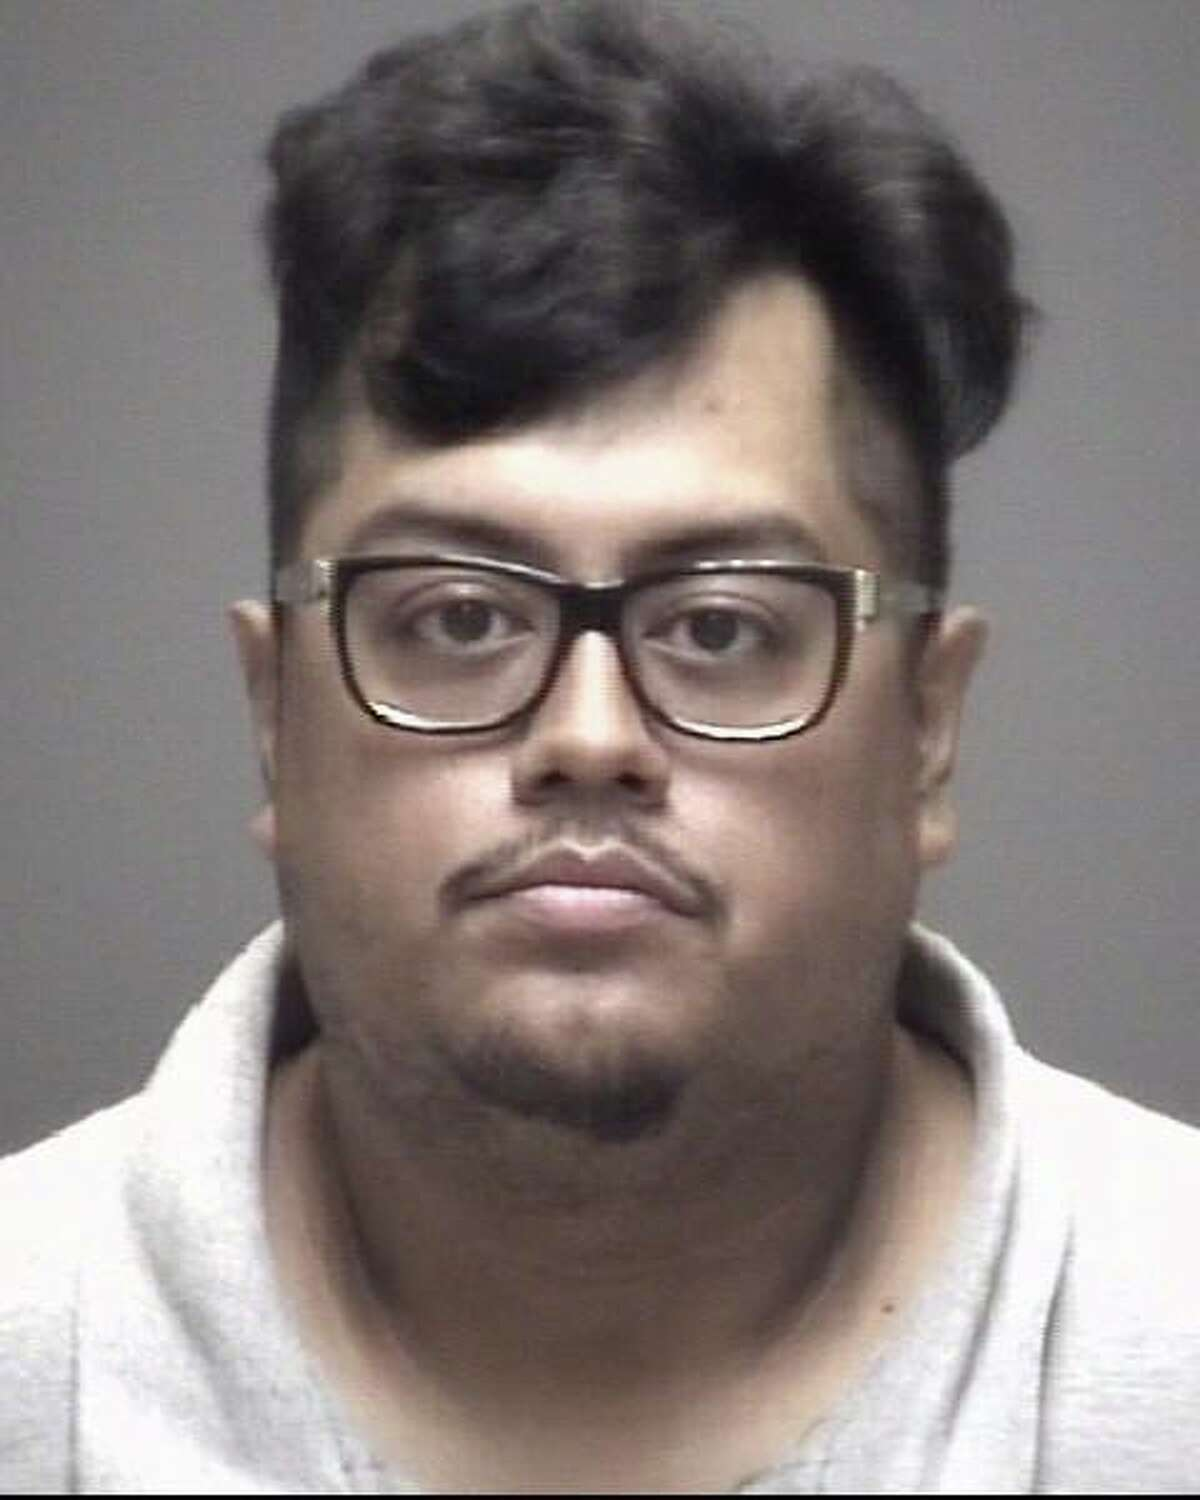 Jose Sanchez, 32, is charged with drug possession in Galveston County. He is being held in the Galveston County Jail on a bond of $300,000.